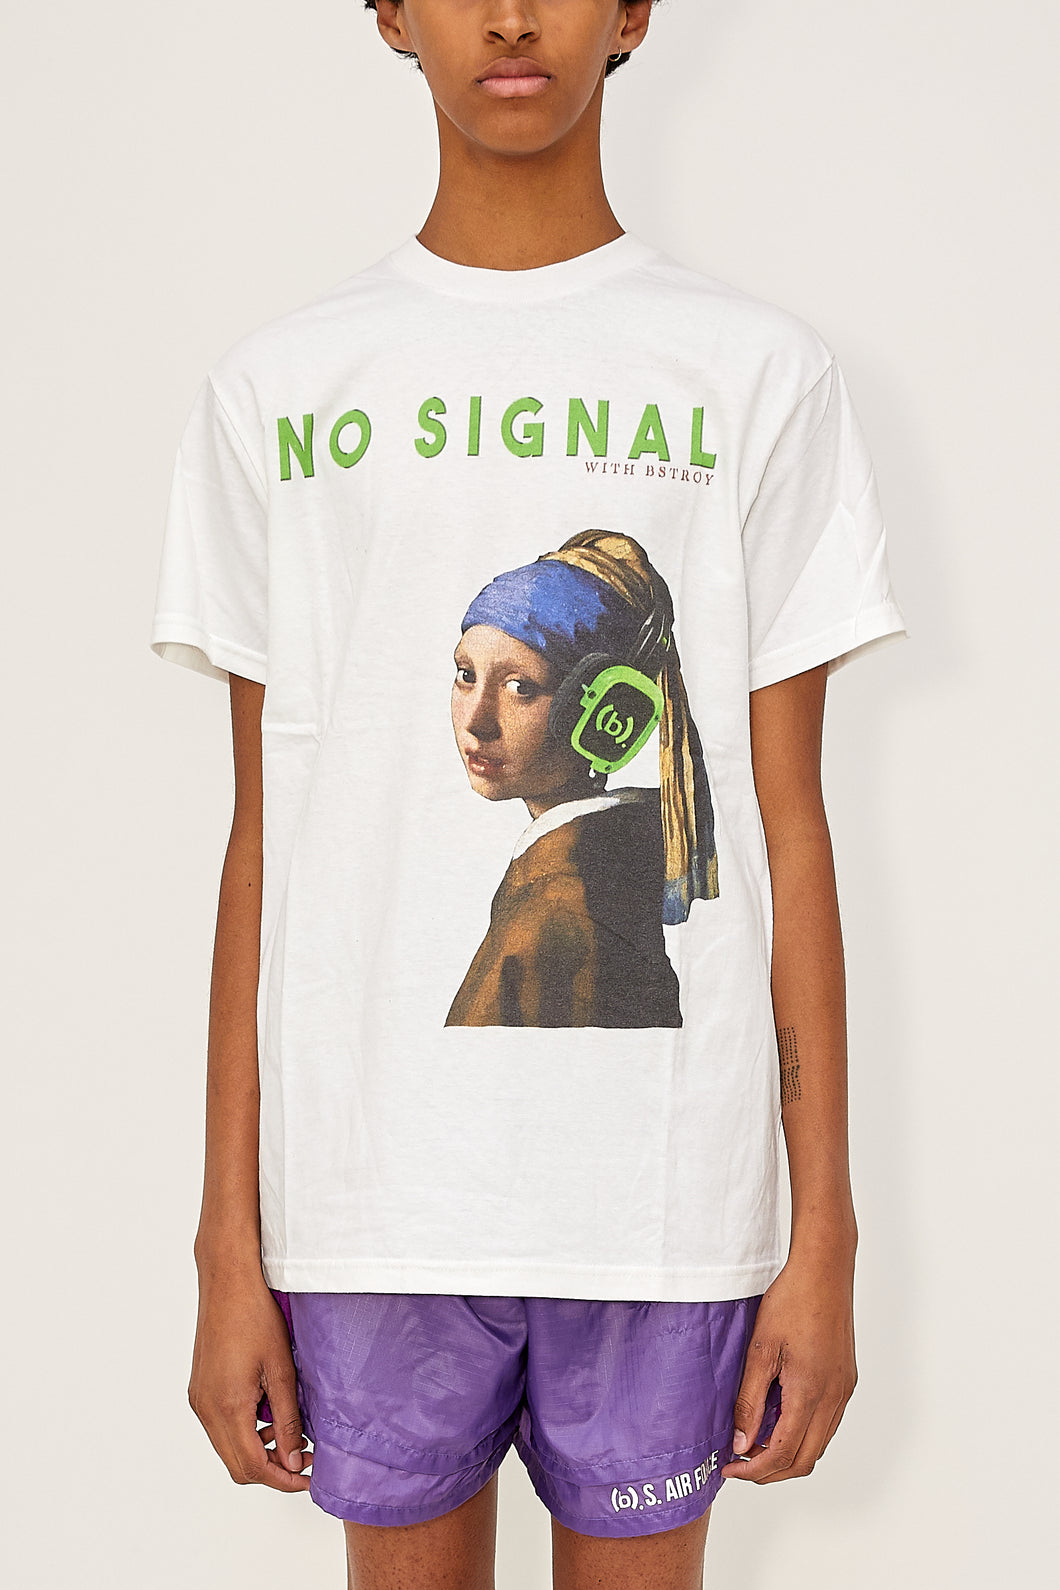 Bstroy x No Signal Headphone Tee (White)